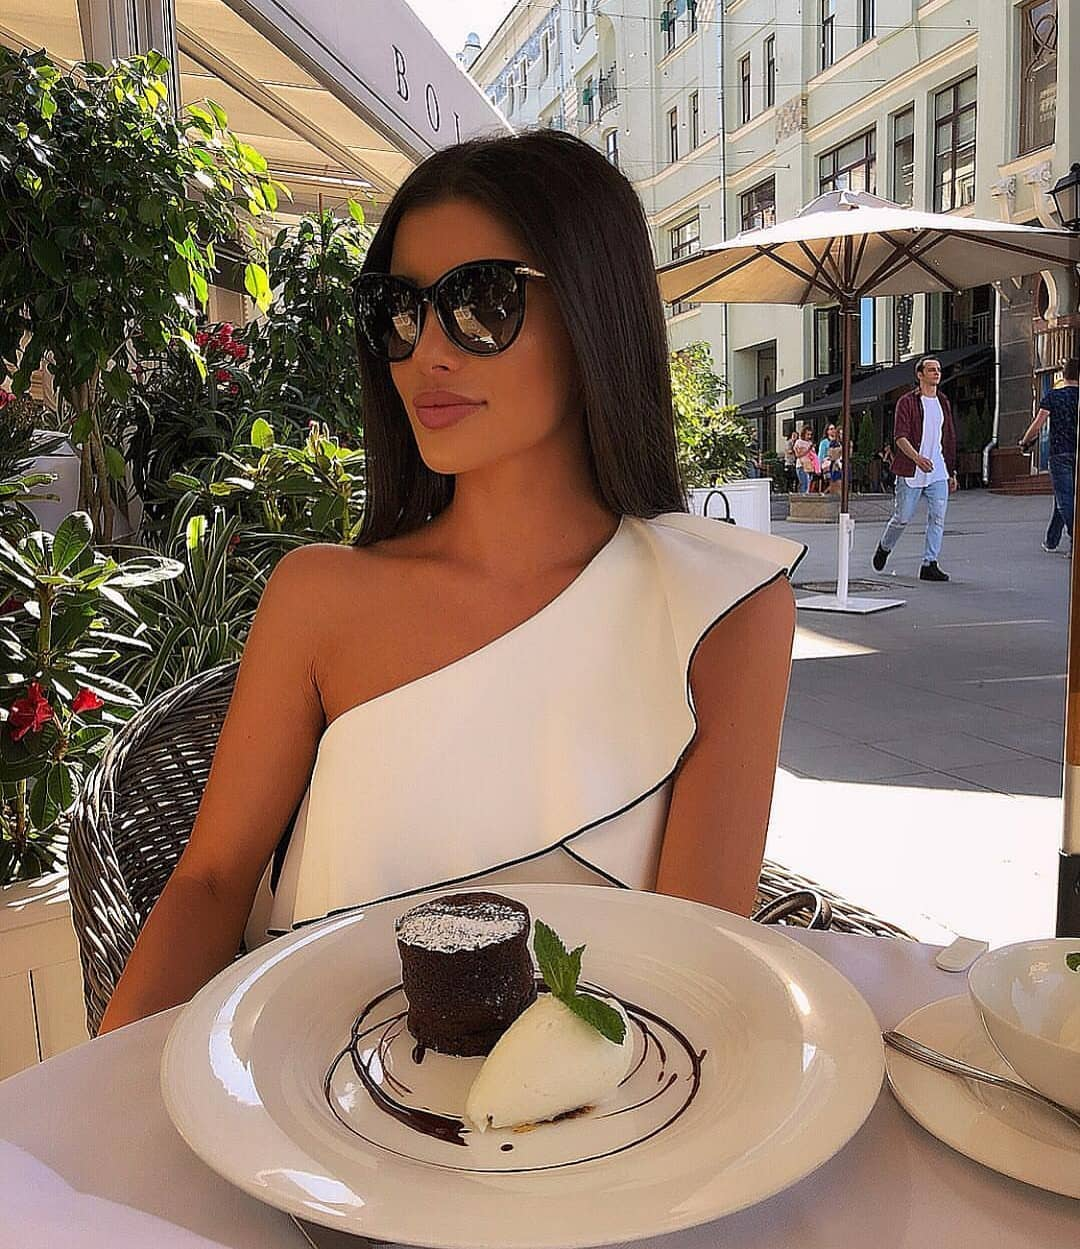 Italian Woman White Dress Outfit Idea For Summer 2019